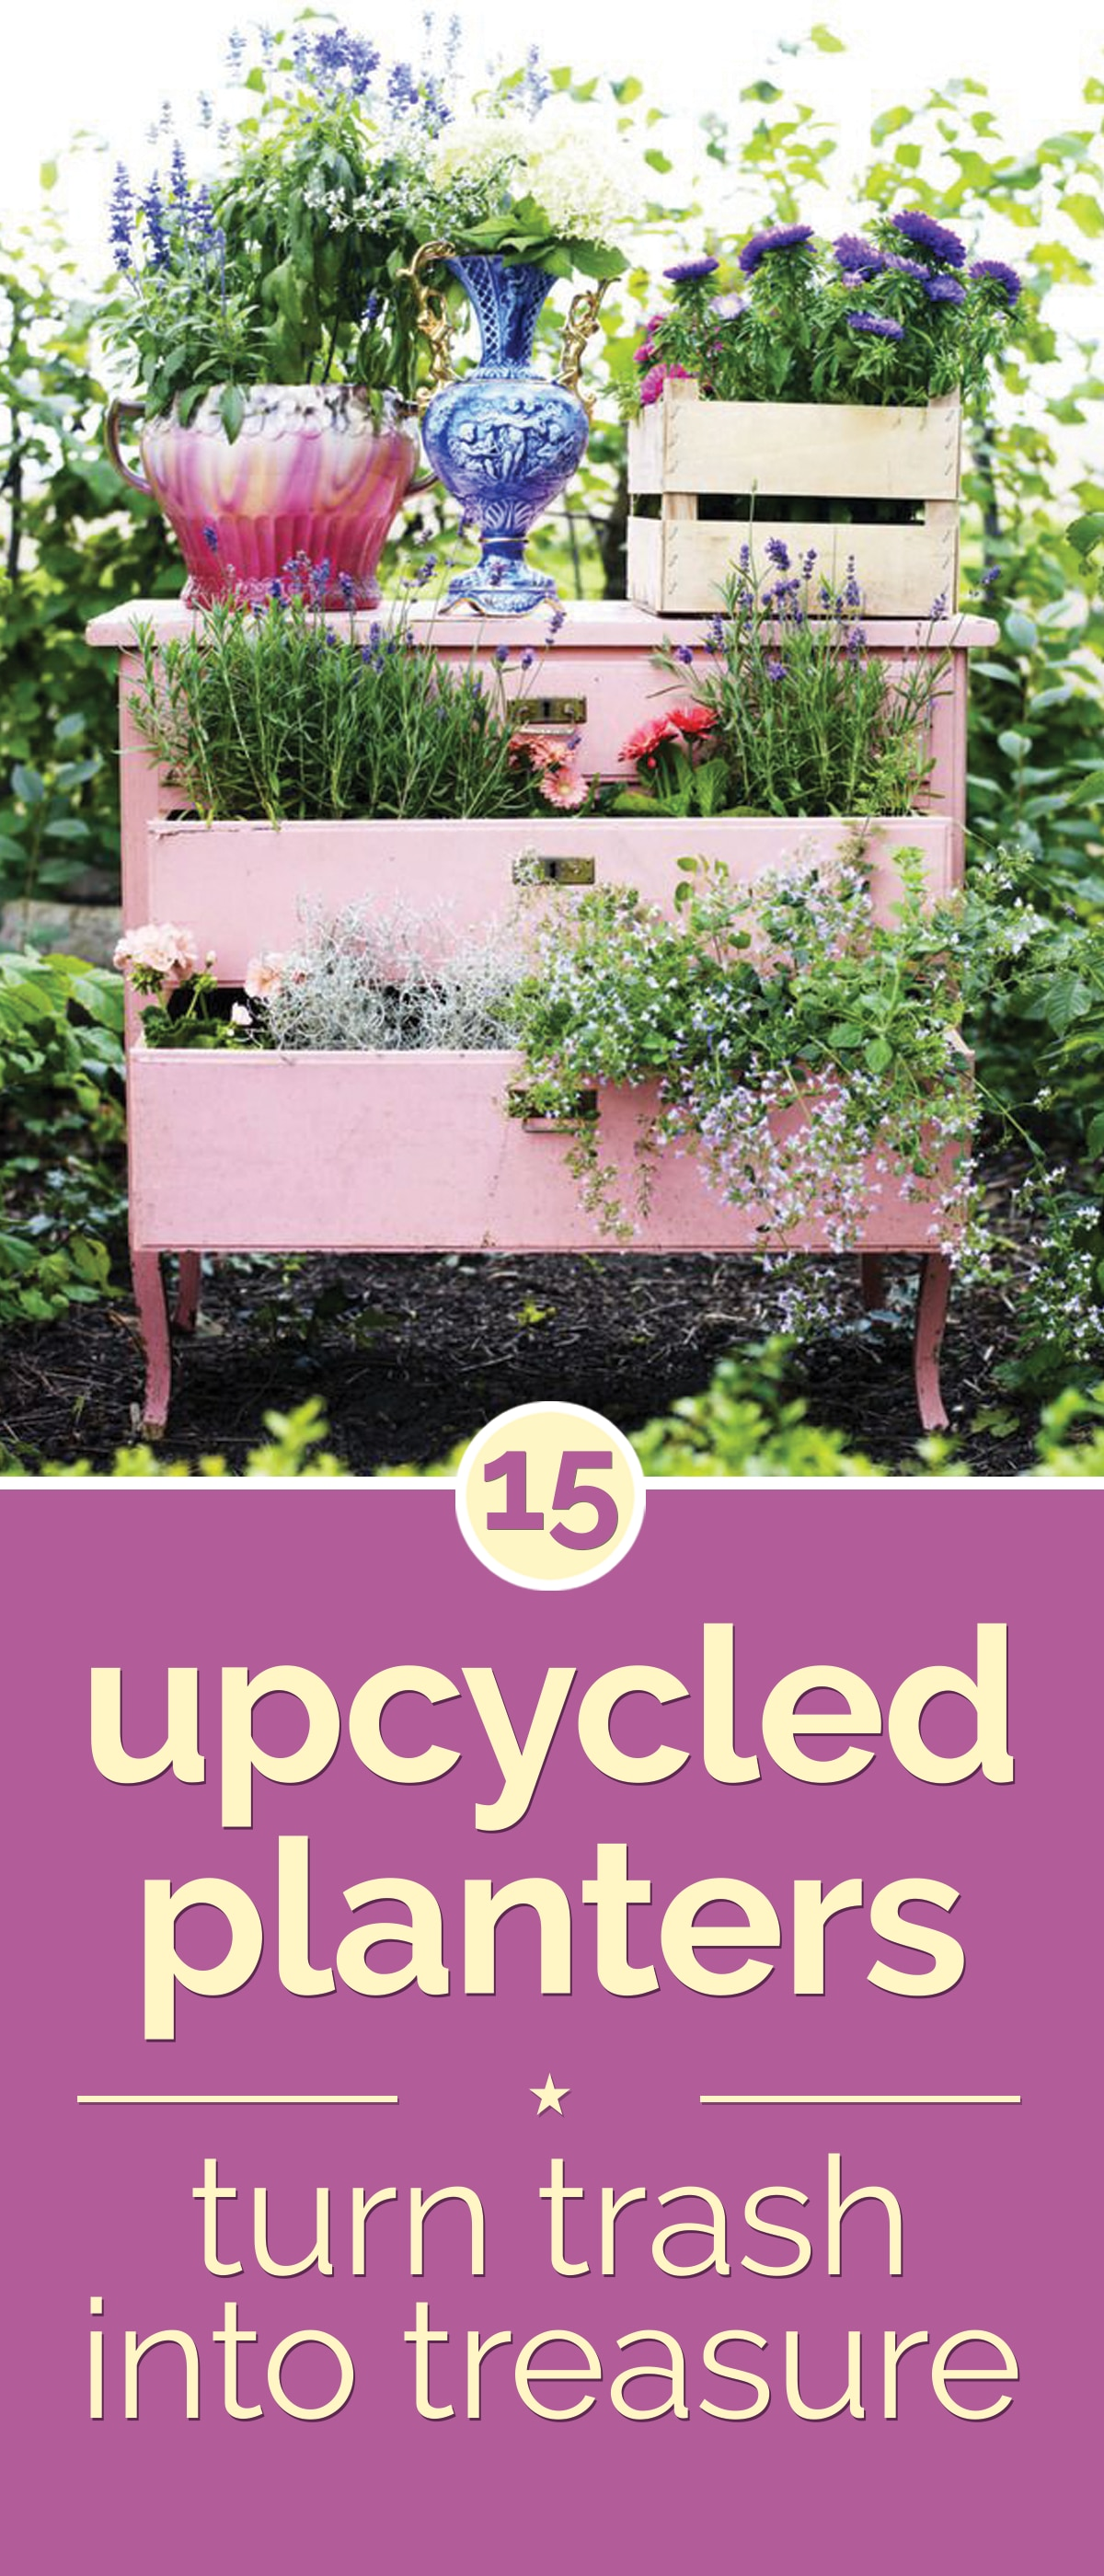 upcycled-garden-containers-2